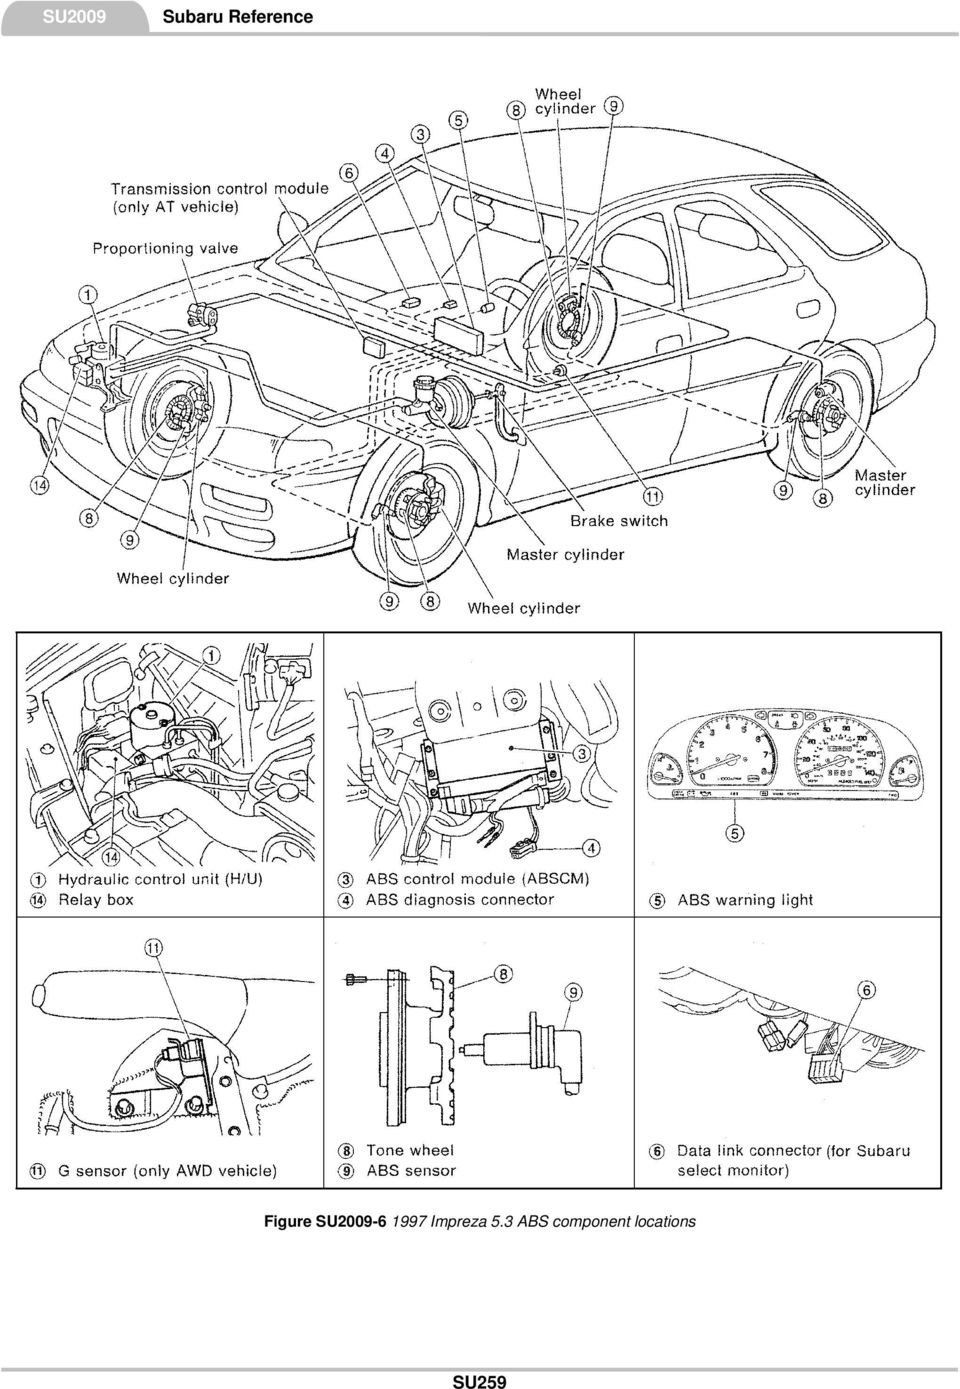 medium resolution of 19 figure su impreza 5 3i abs wiring diagram sheet 1 of 2 su260 subaru reference